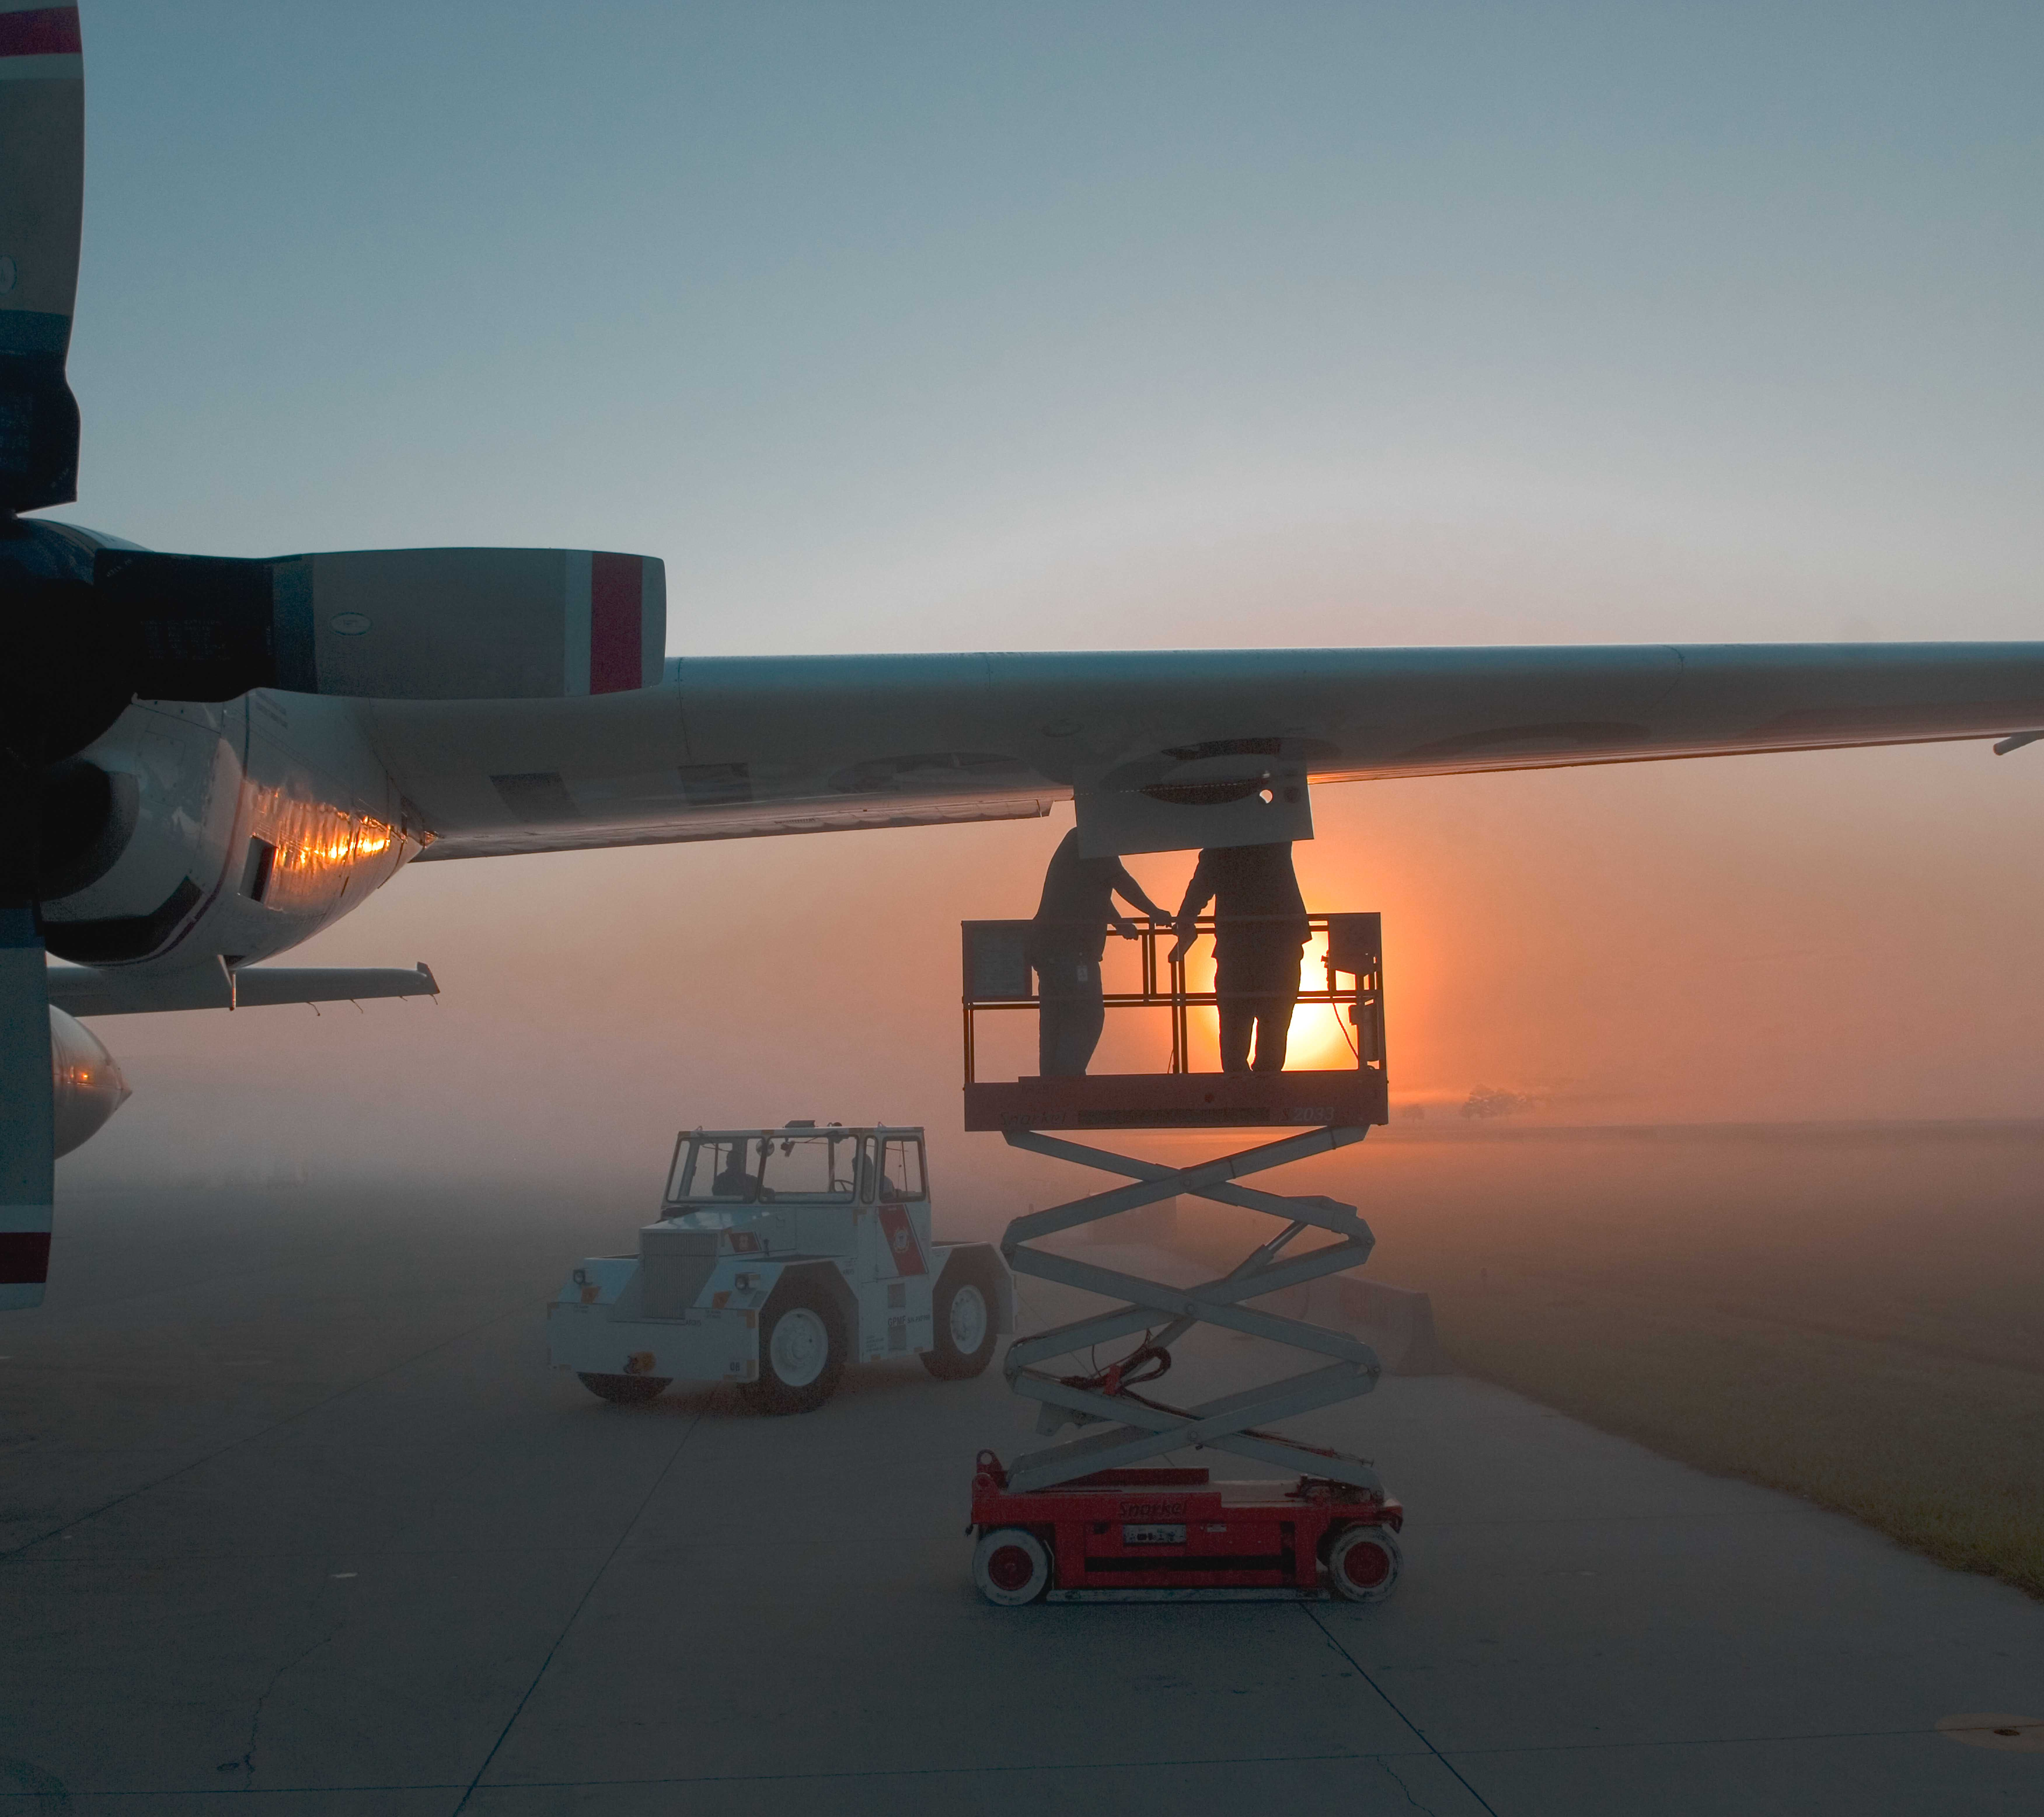 C130 in fog- Coast Guard  Photo by Dave Silva